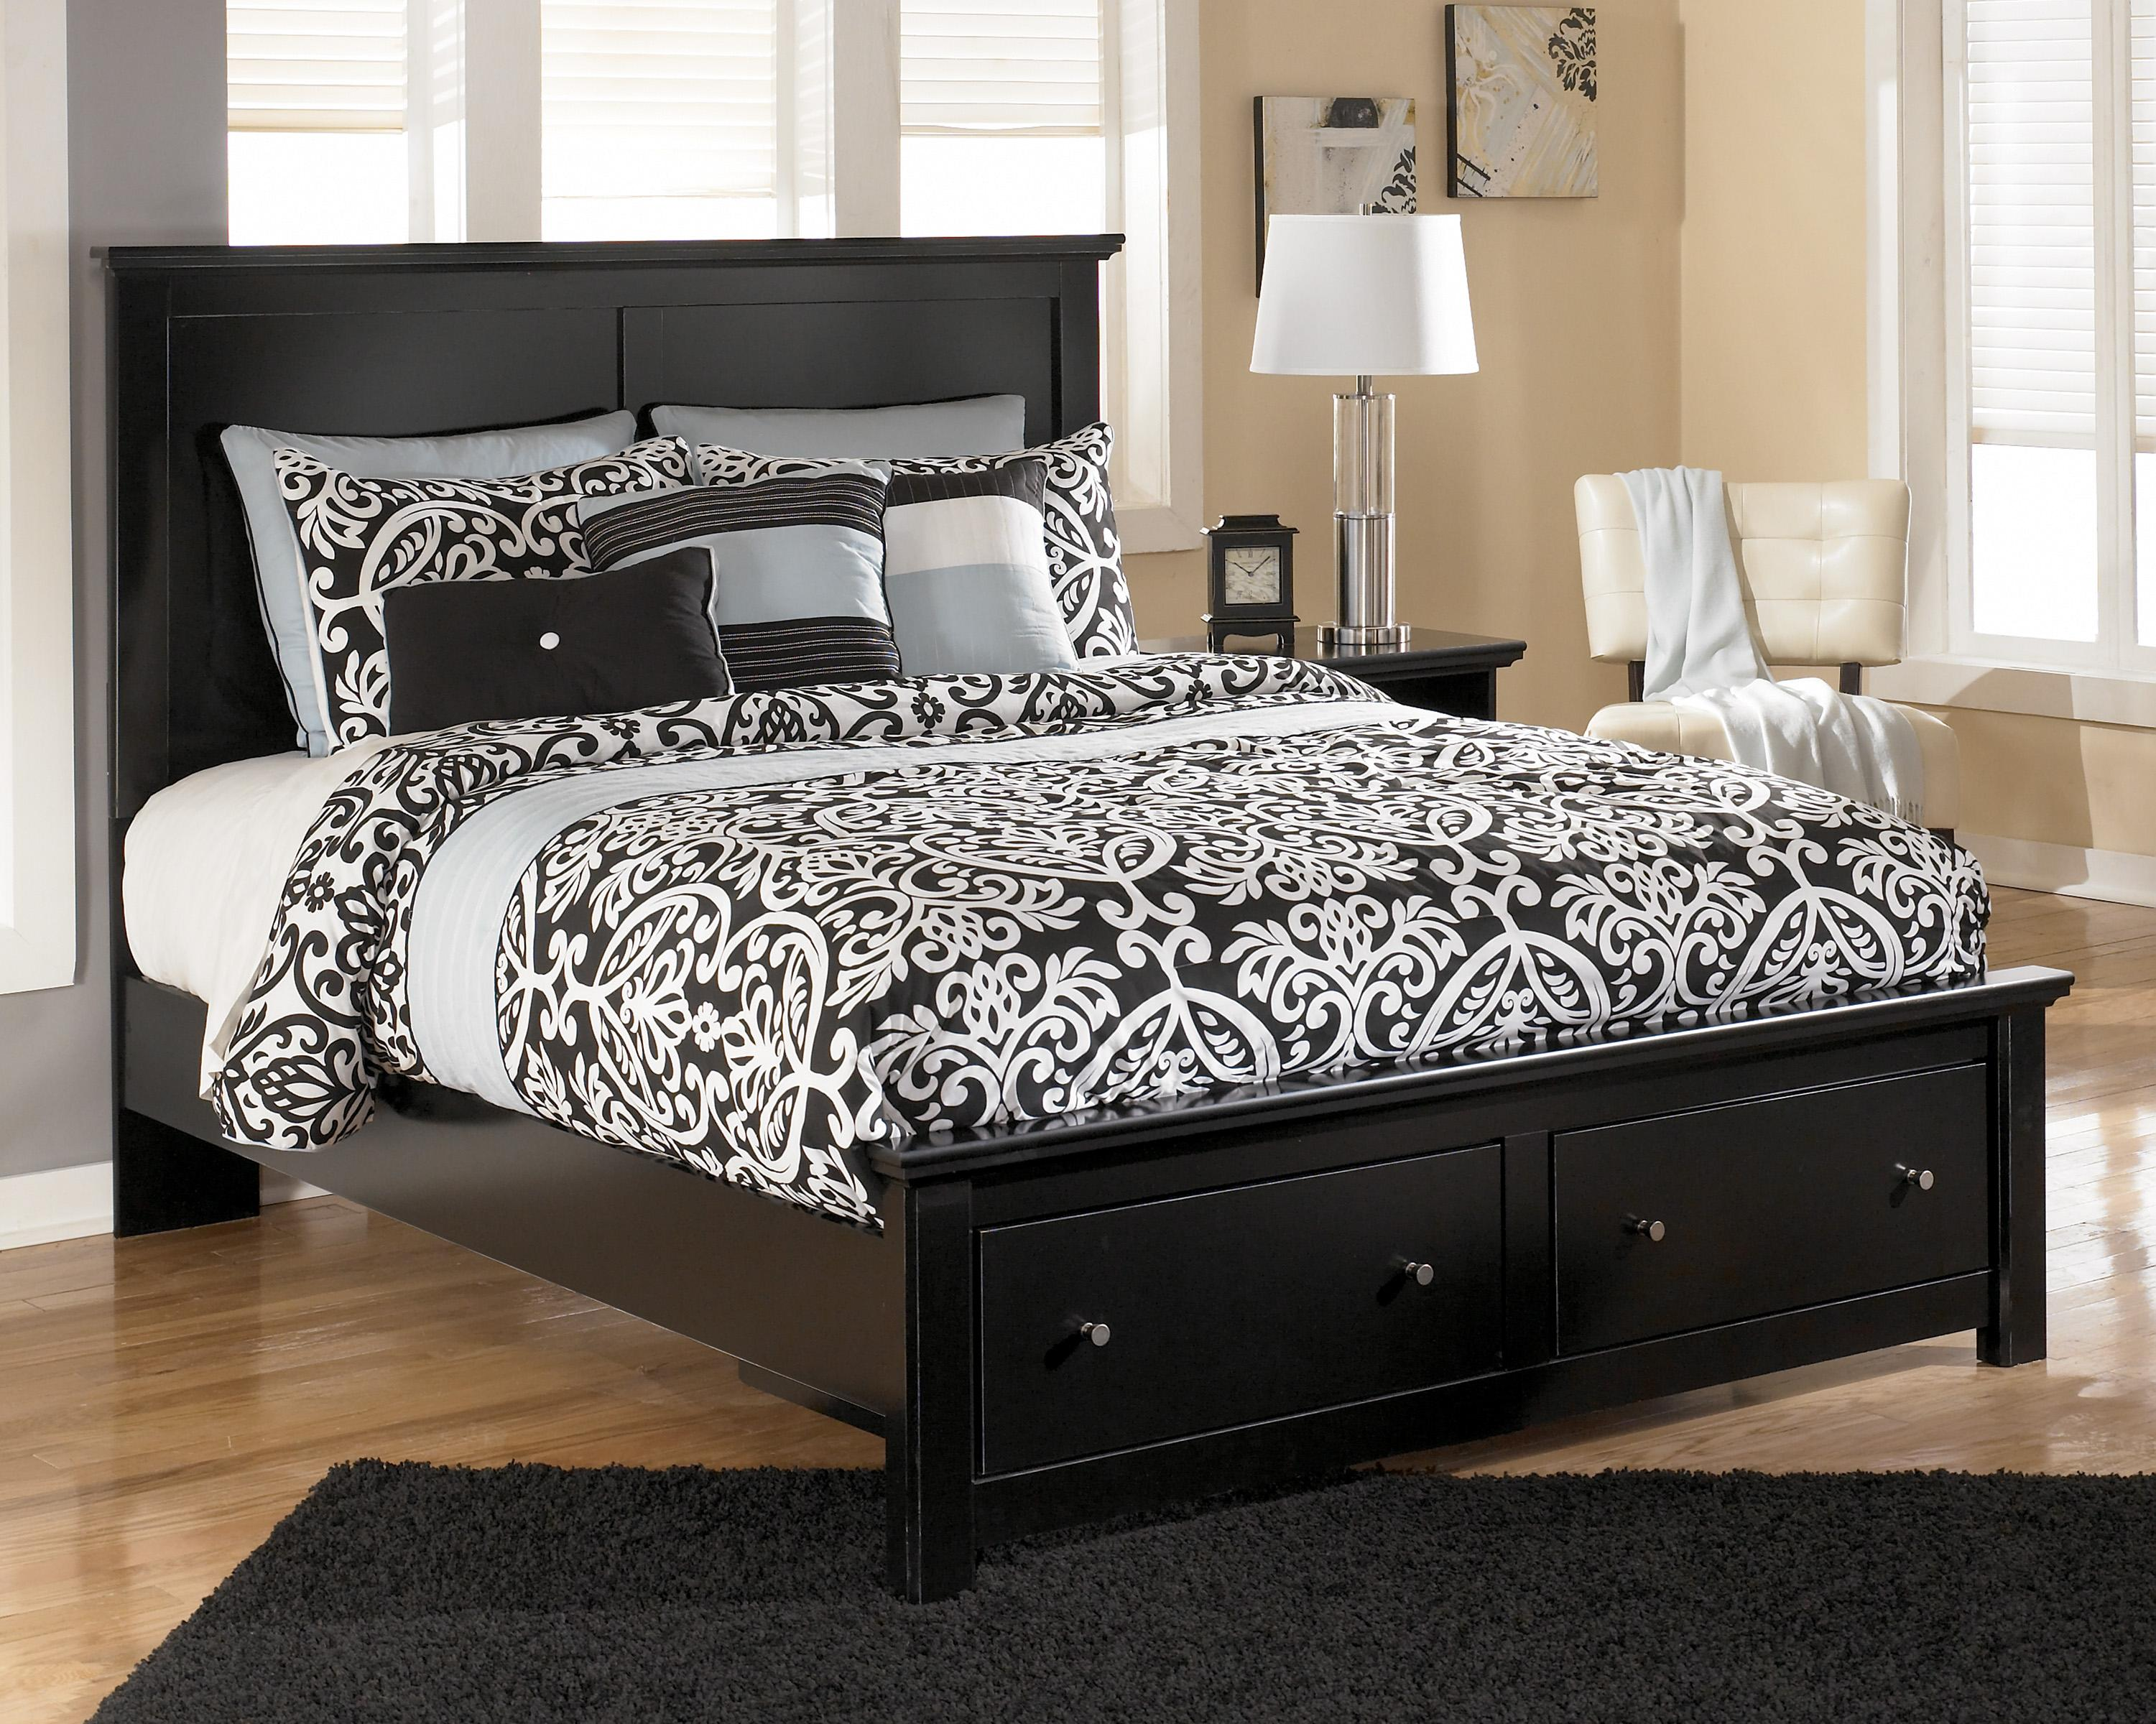 Signature Design by Ashley Maribel Queen Storage Bed with 2 Footboard  Drawers - AHFA - Headboard & Footboard Dealer Locator